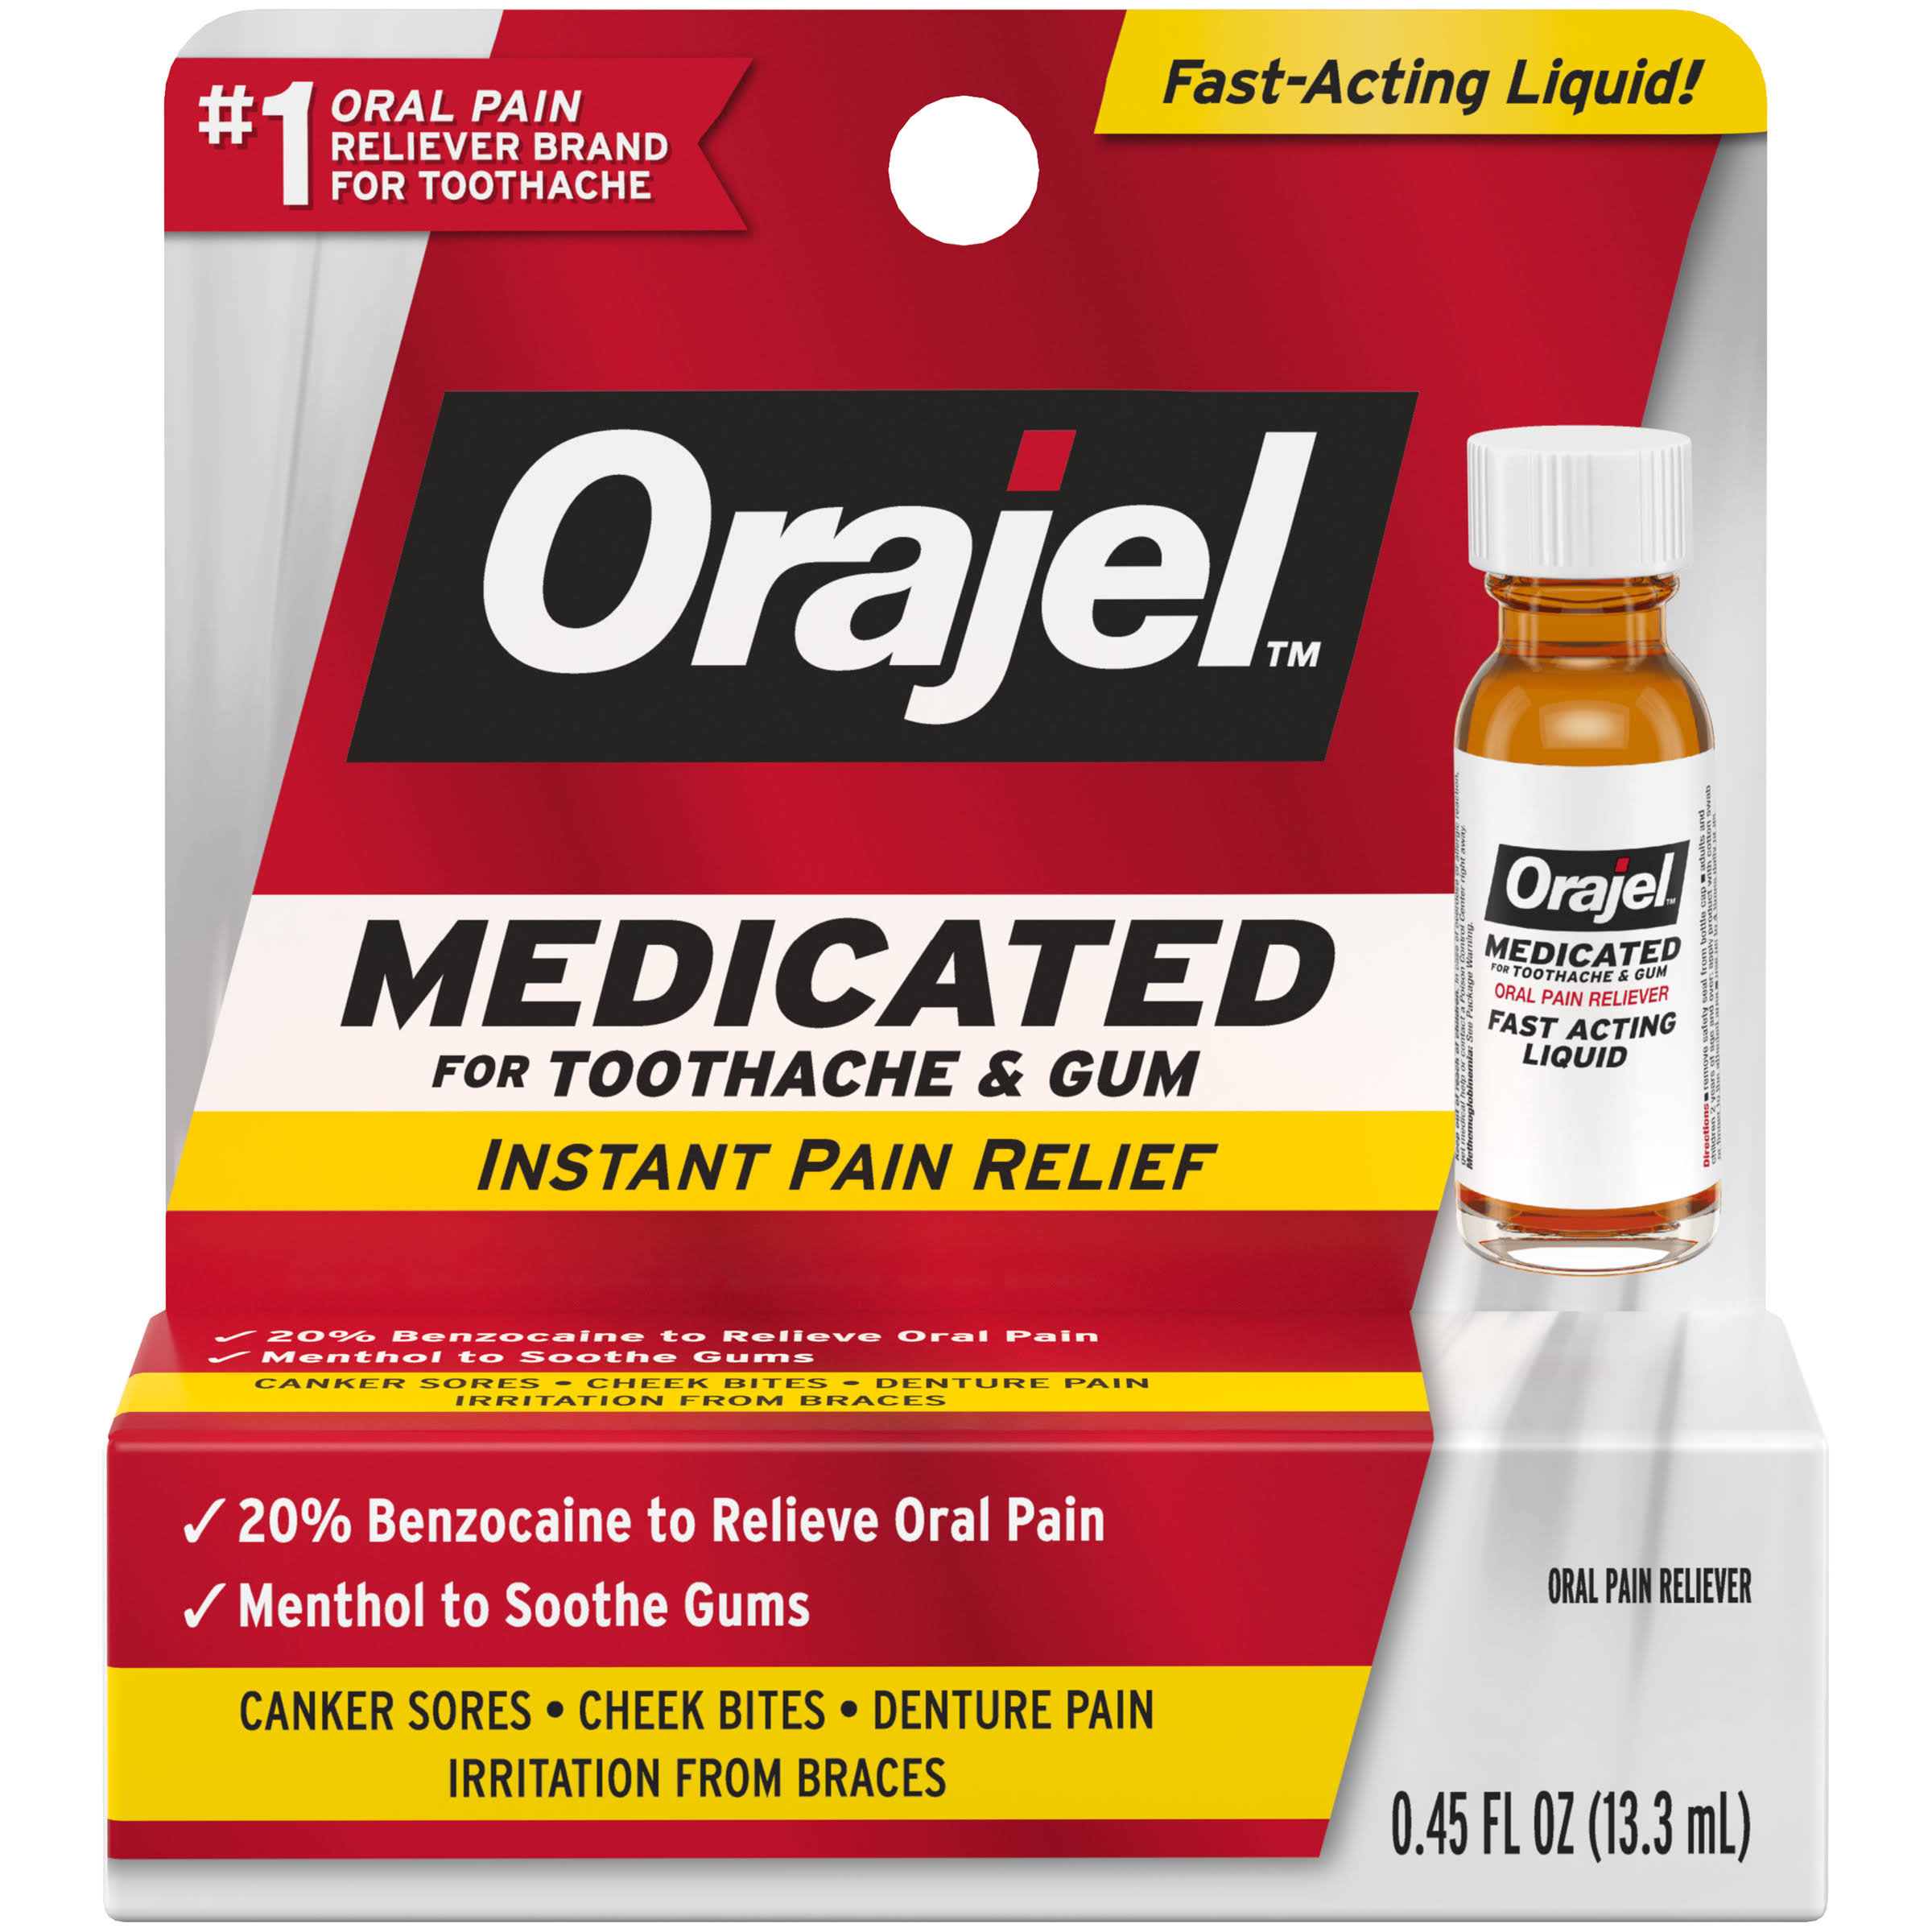 Orajel Liquid Maximum Strength Toothache Pain Relief - 13.3ml